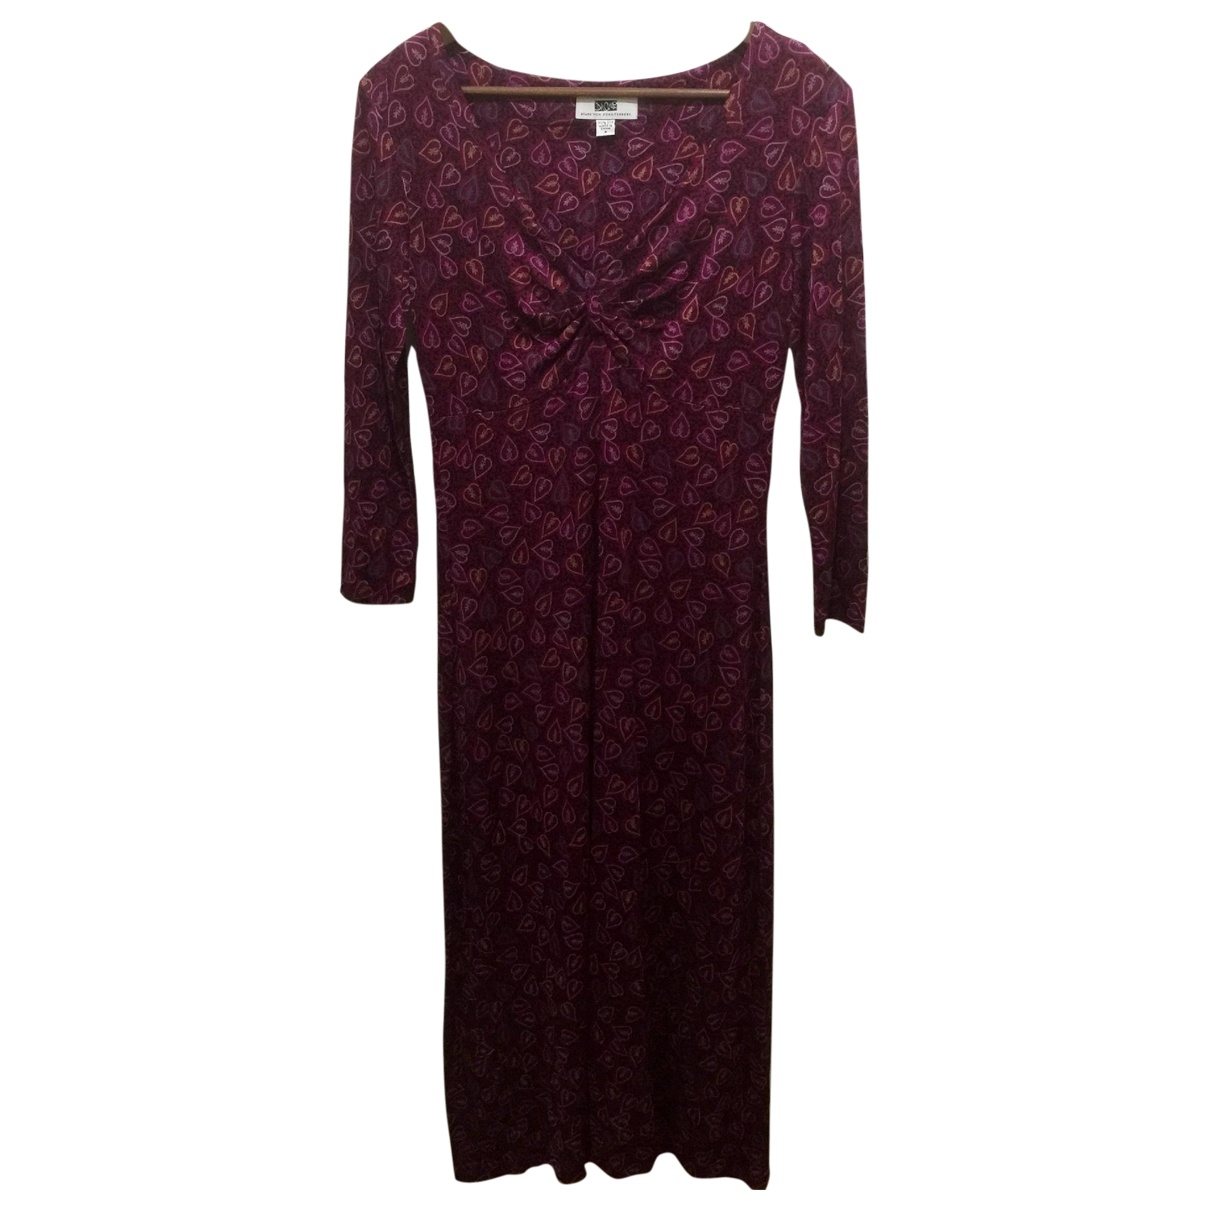 Diane Von Furstenberg \N Burgundy Silk dress for Women 8 US